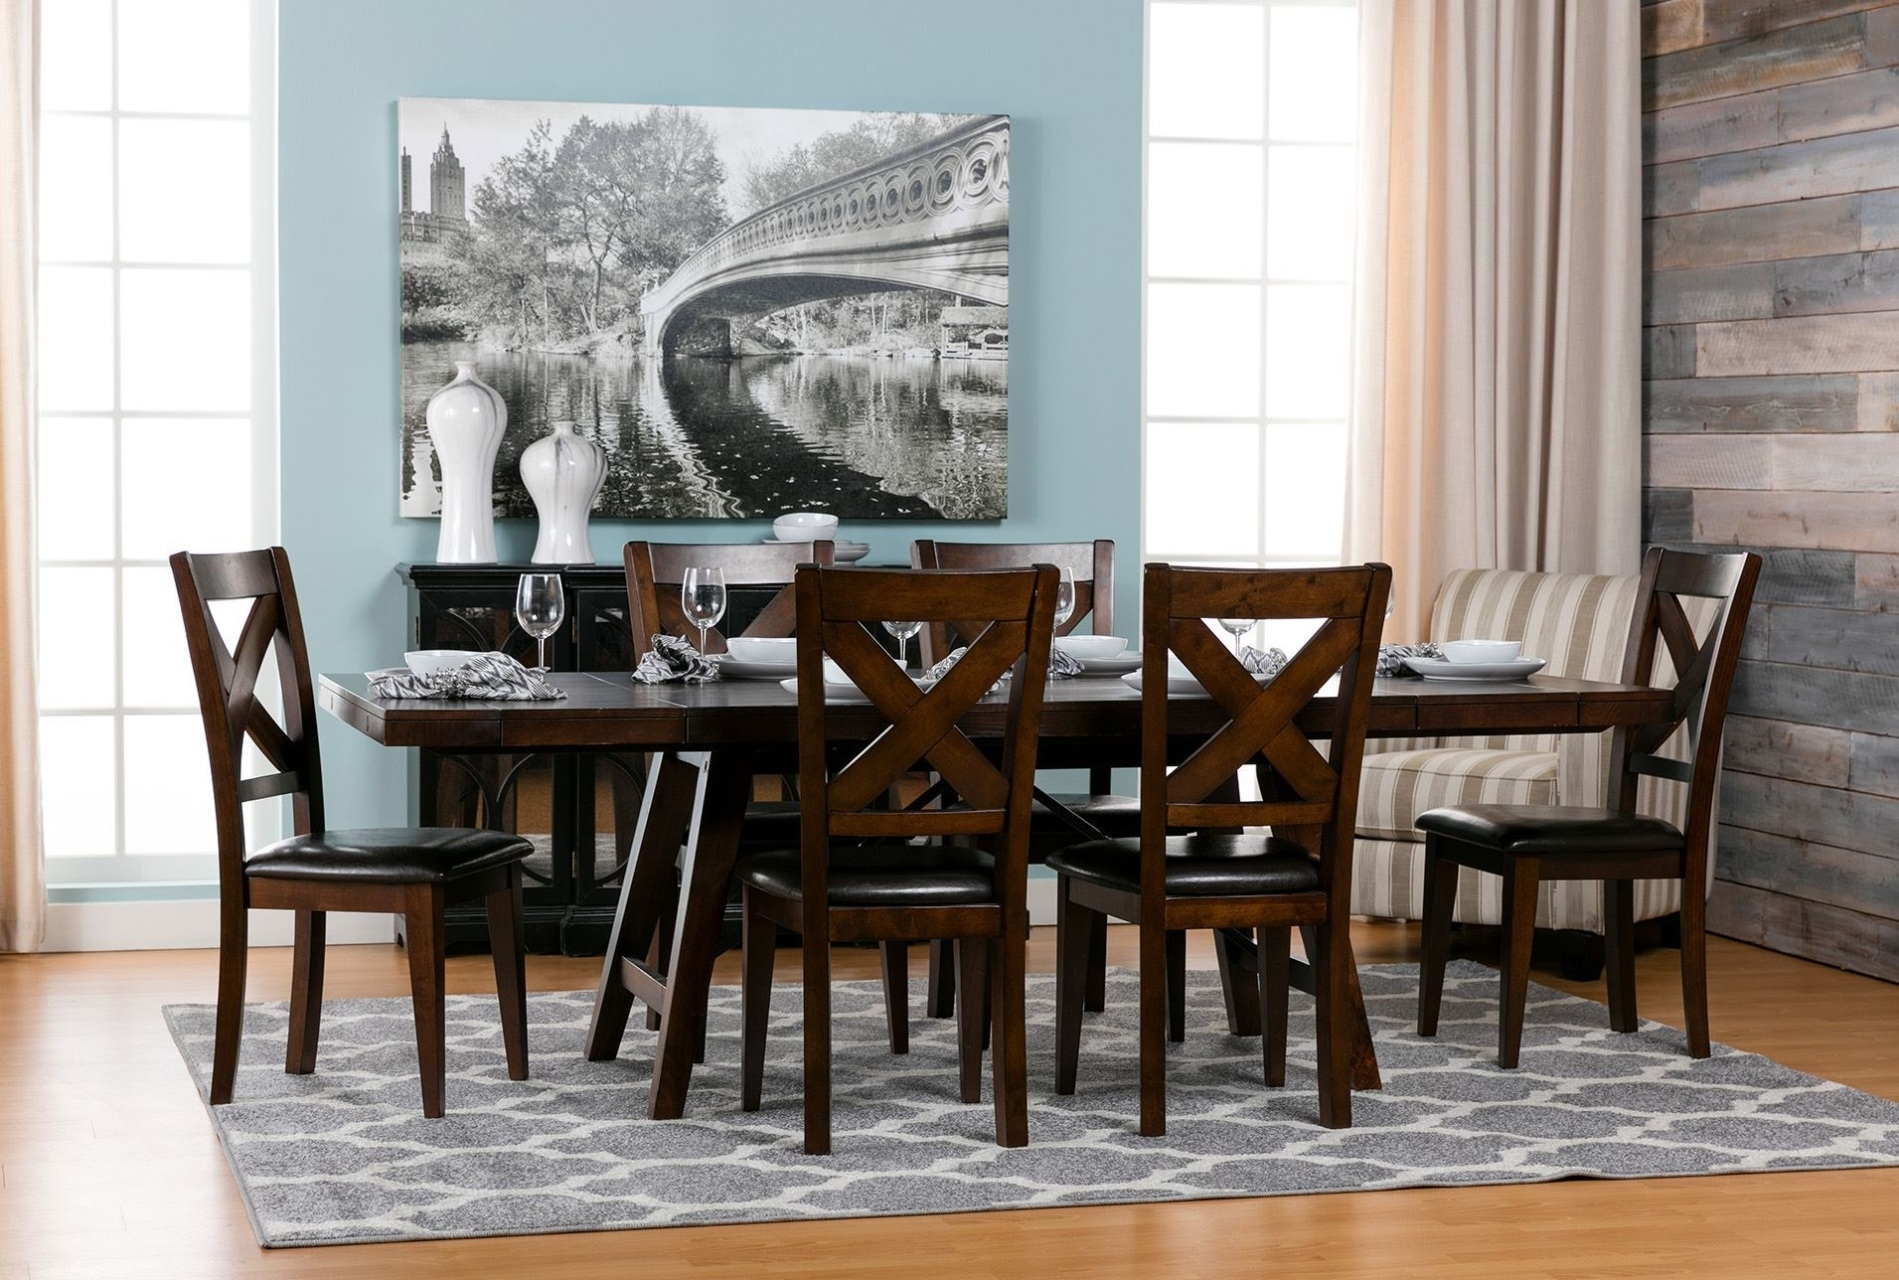 Tables, Chairs, & Servers – Hello Furniture Throughout Most Up To Date Jaxon Grey 7 Piece Rectangle Extension Dining Sets With Wood Chairs (Image 20 of 20)